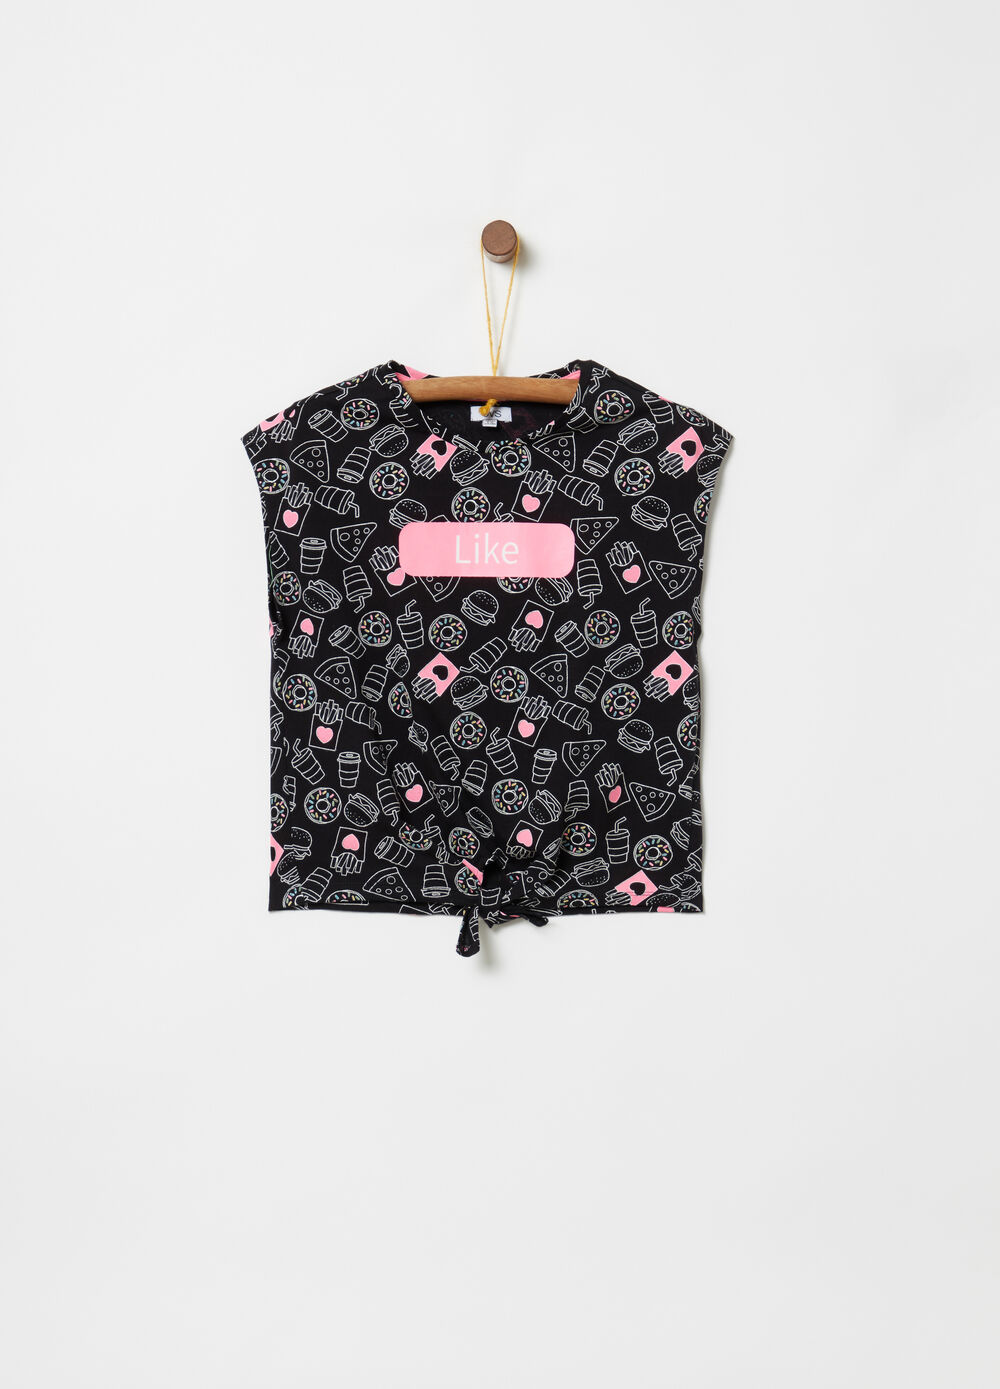 100% cotton T-shirt with print and pattern